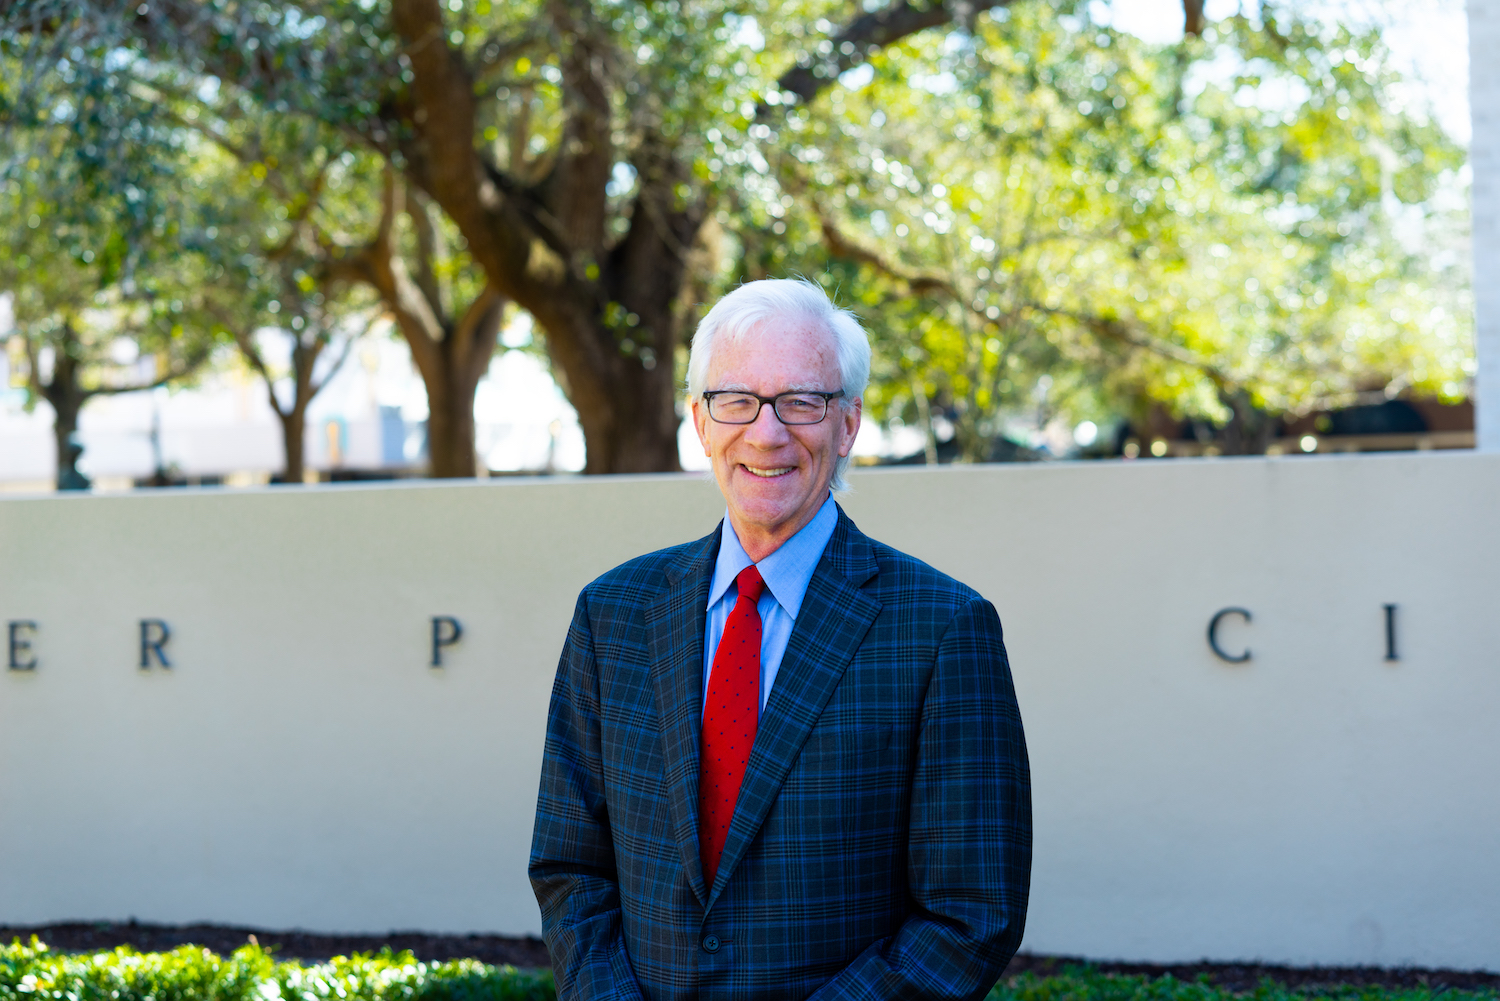 Mayor-Elect Phil Anderson poses in front of City Hall in Winter Park.